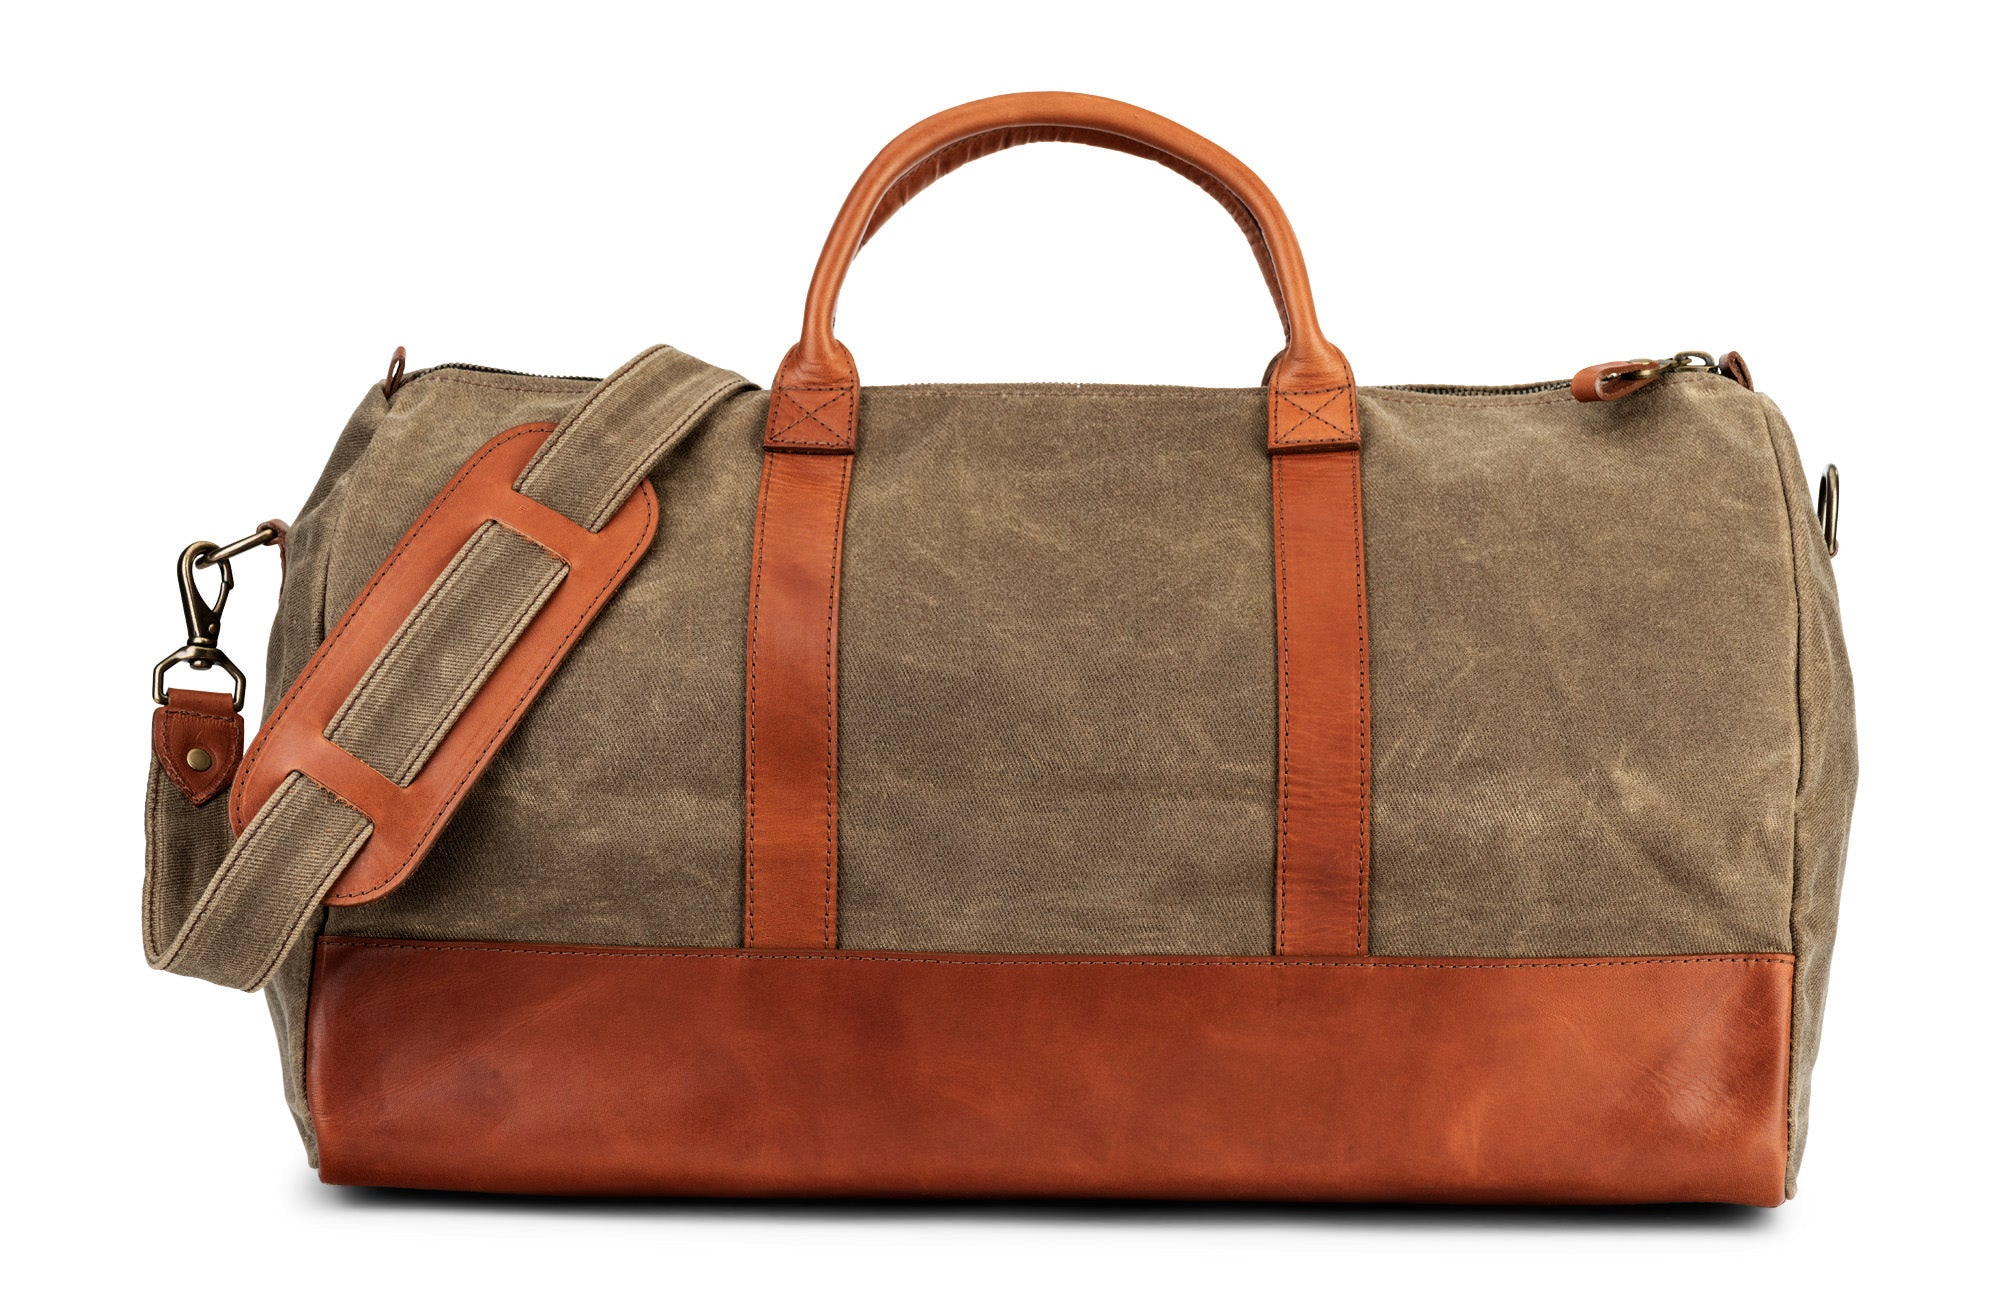 617378354 jackson wayne leather waxed canvas twill weave weekender travel duffle bag  in saddle tan made in ...